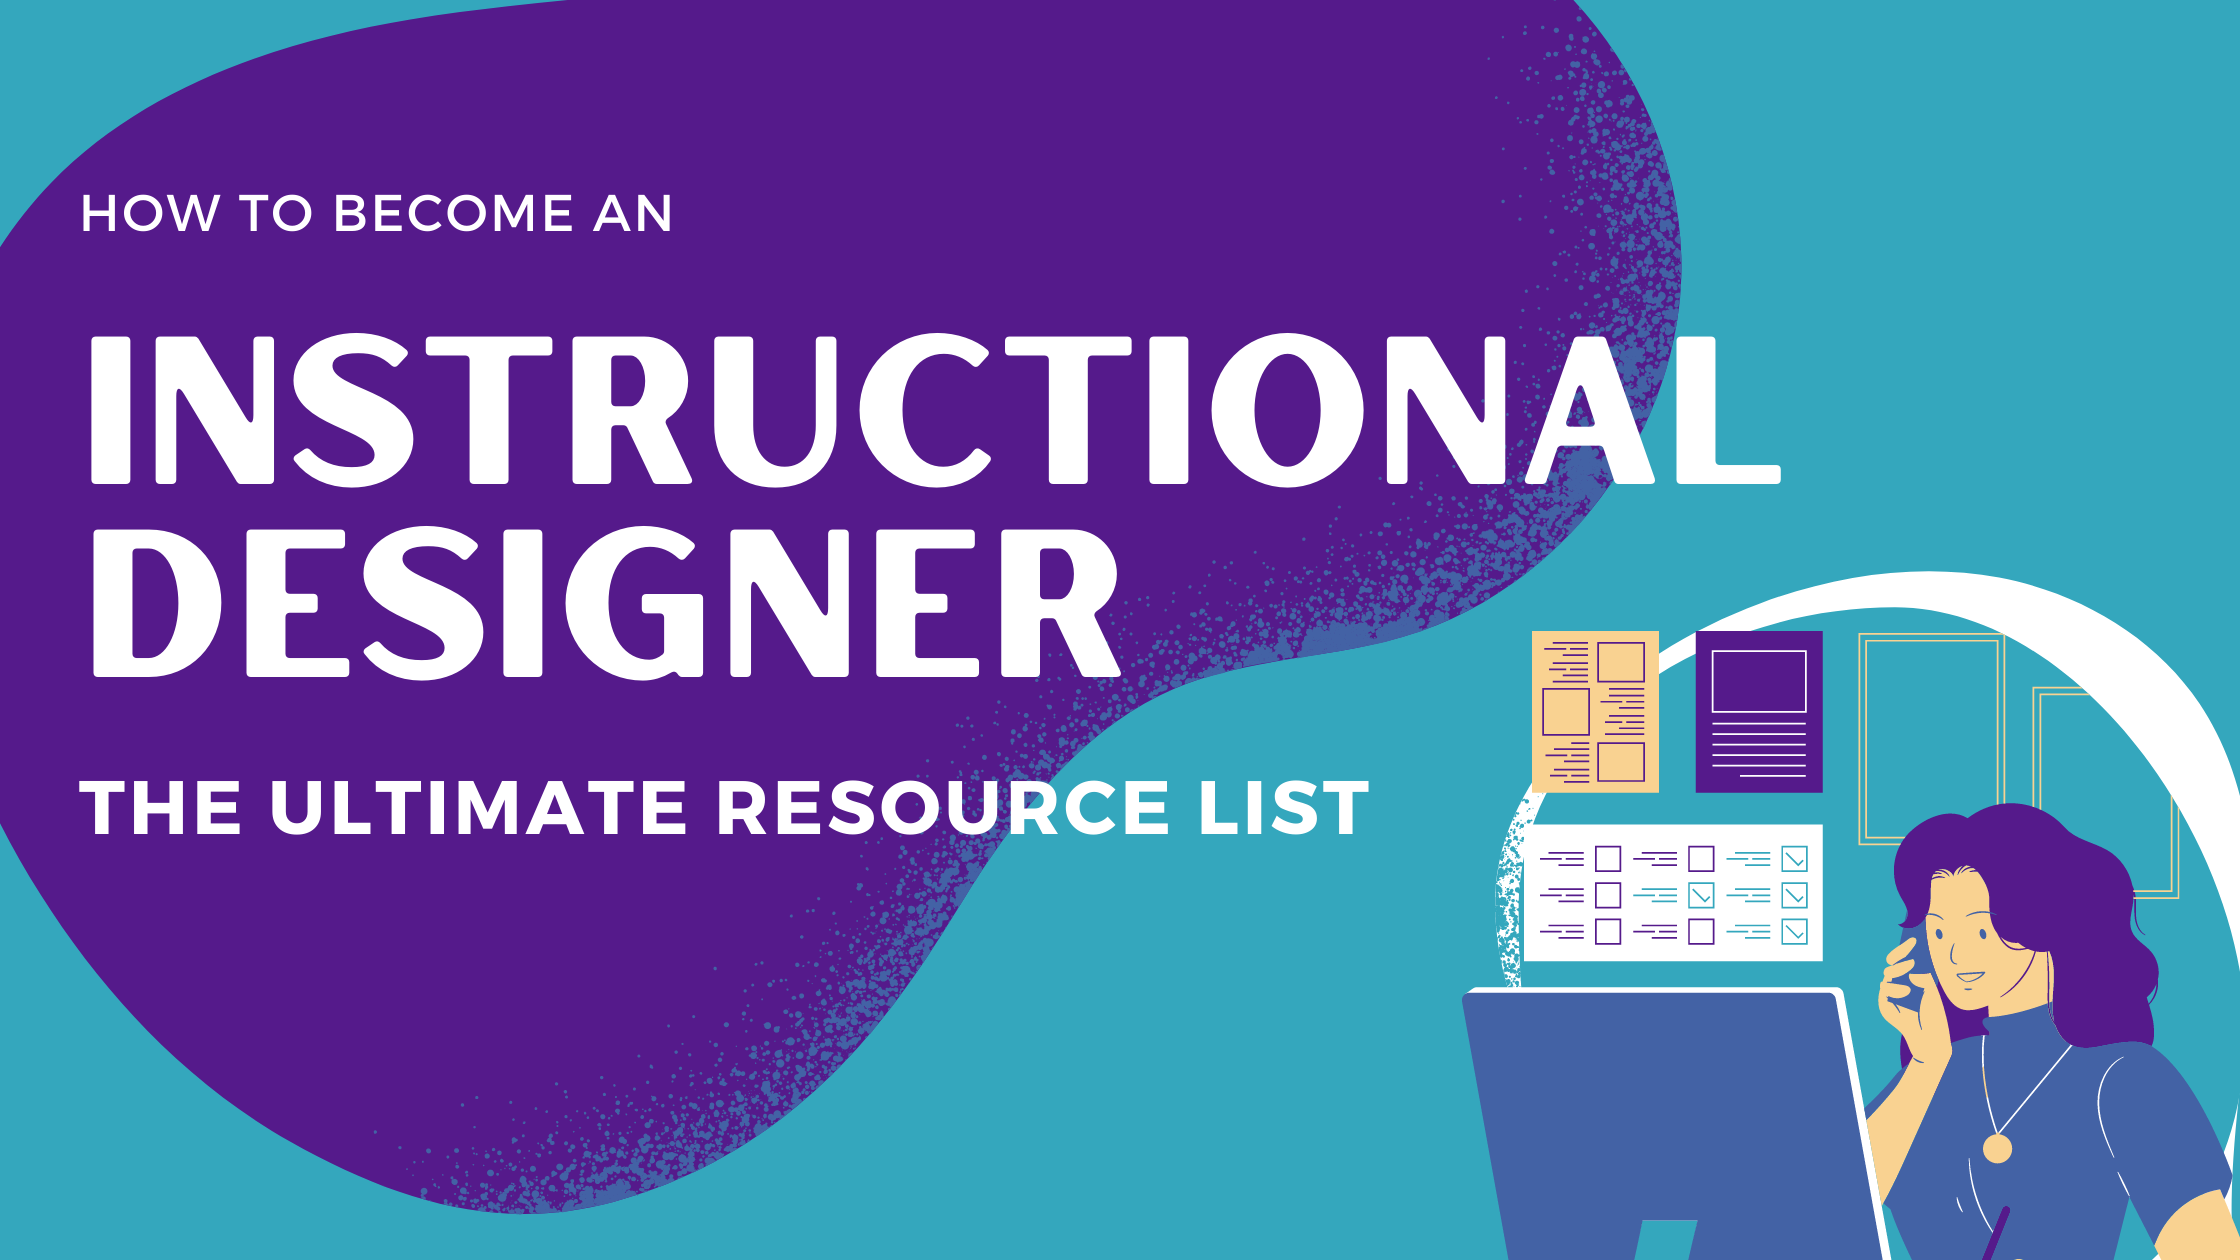 How to Become an Instructional Designer: The Ultimate Resource List. Illustration of a woman at a computer.